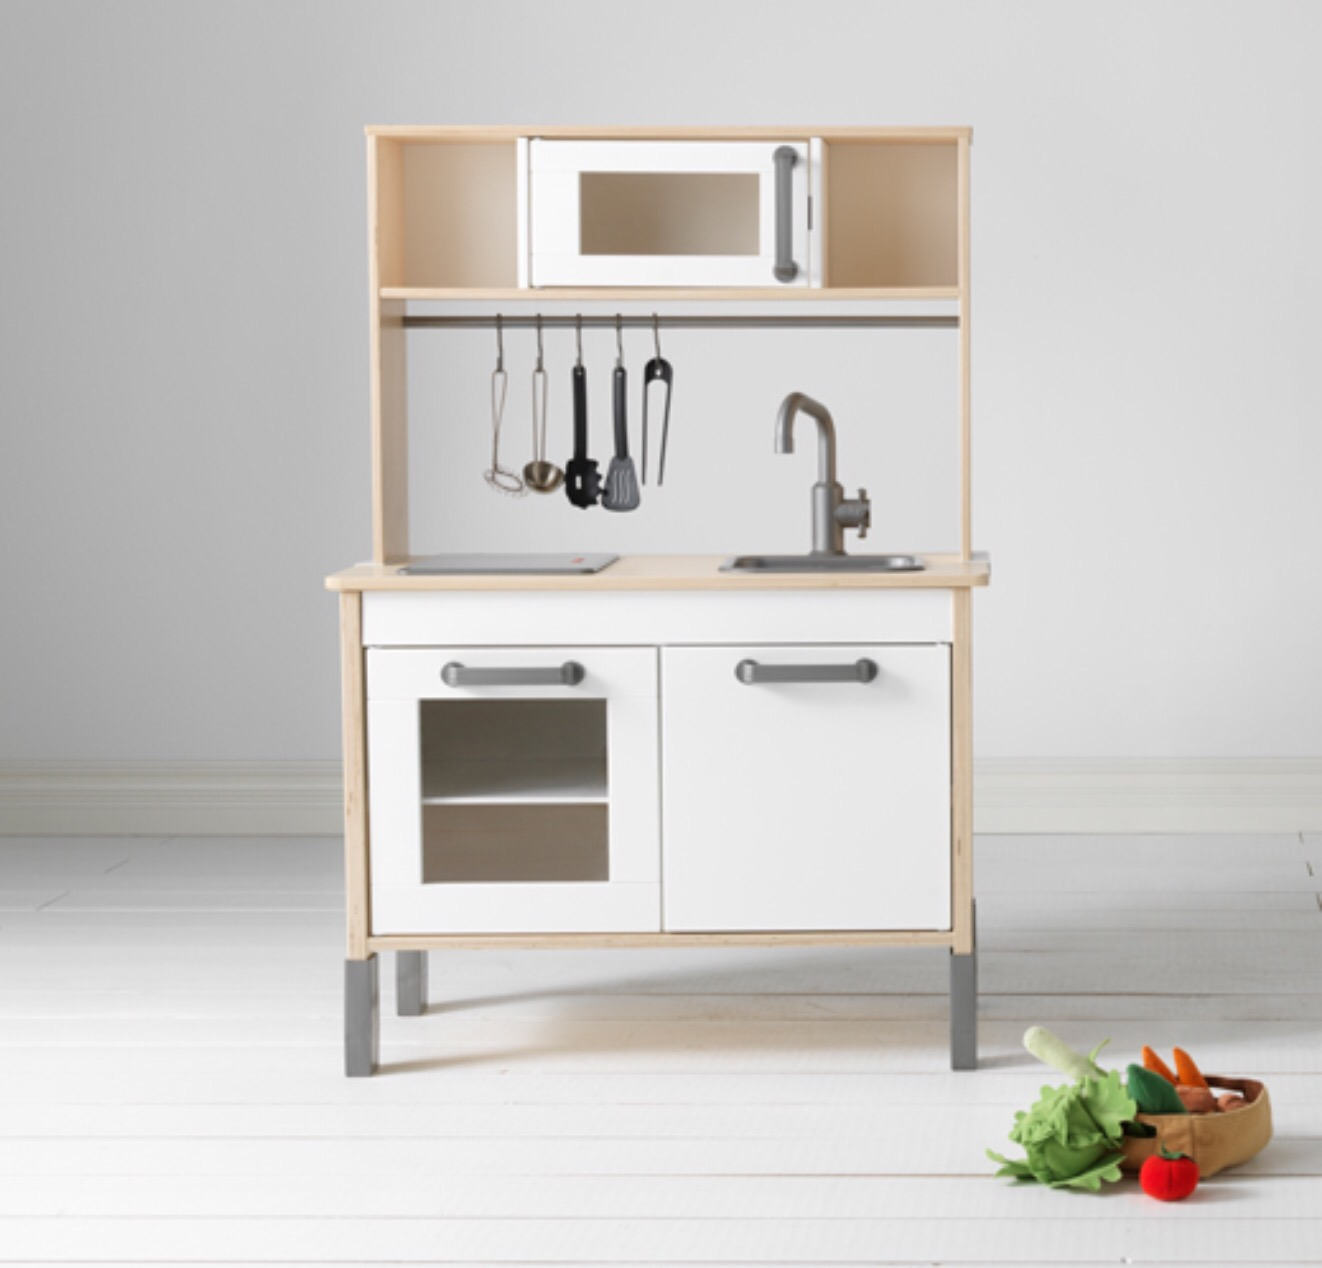 Ikea Kitchen Toy Review